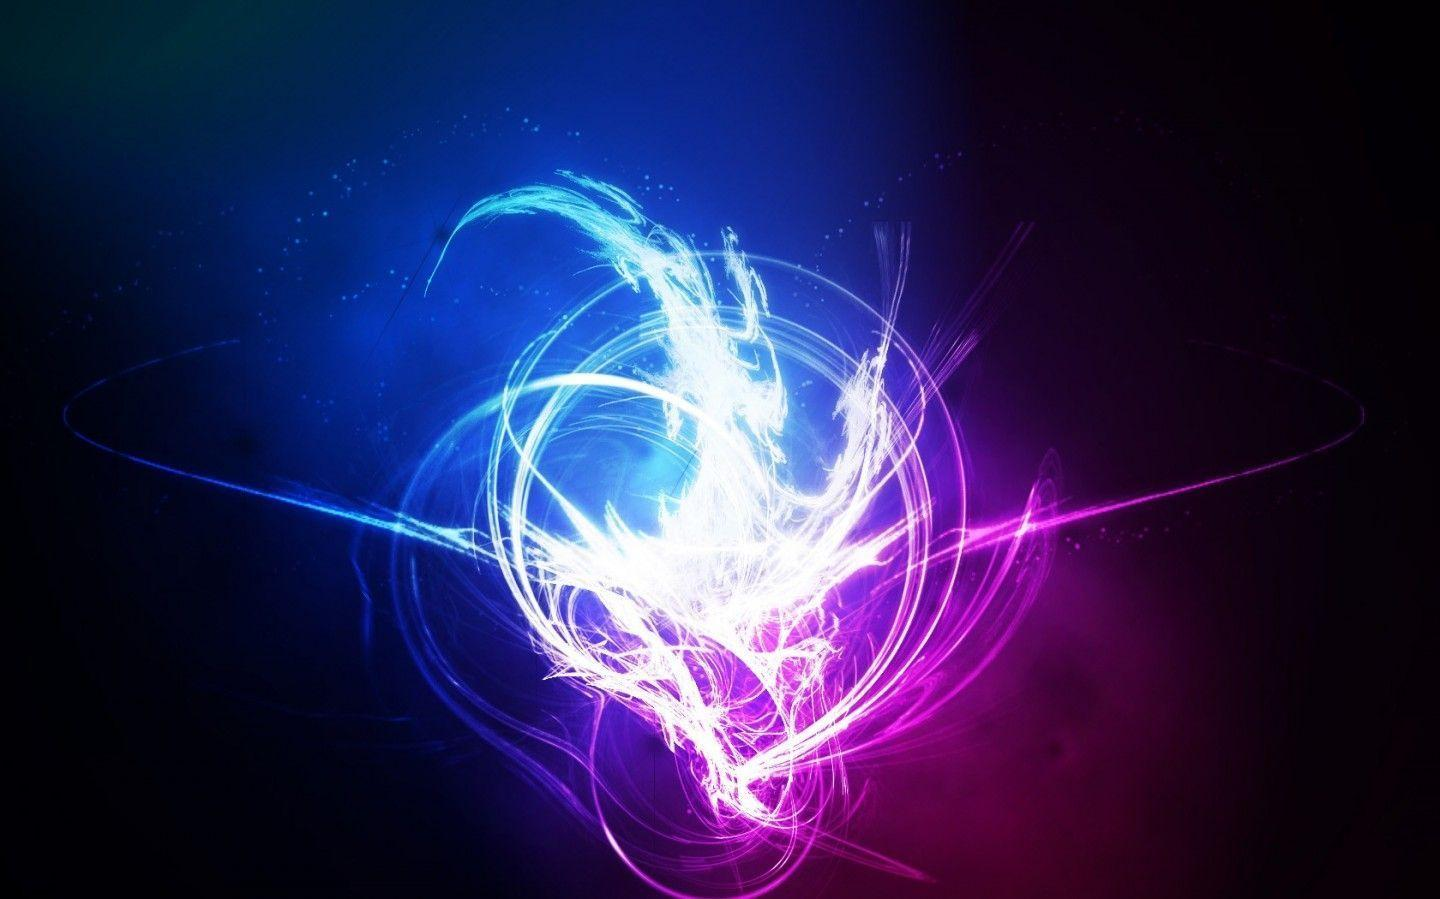 Wallpapers For > Neon Blue Abstract Wallpapers